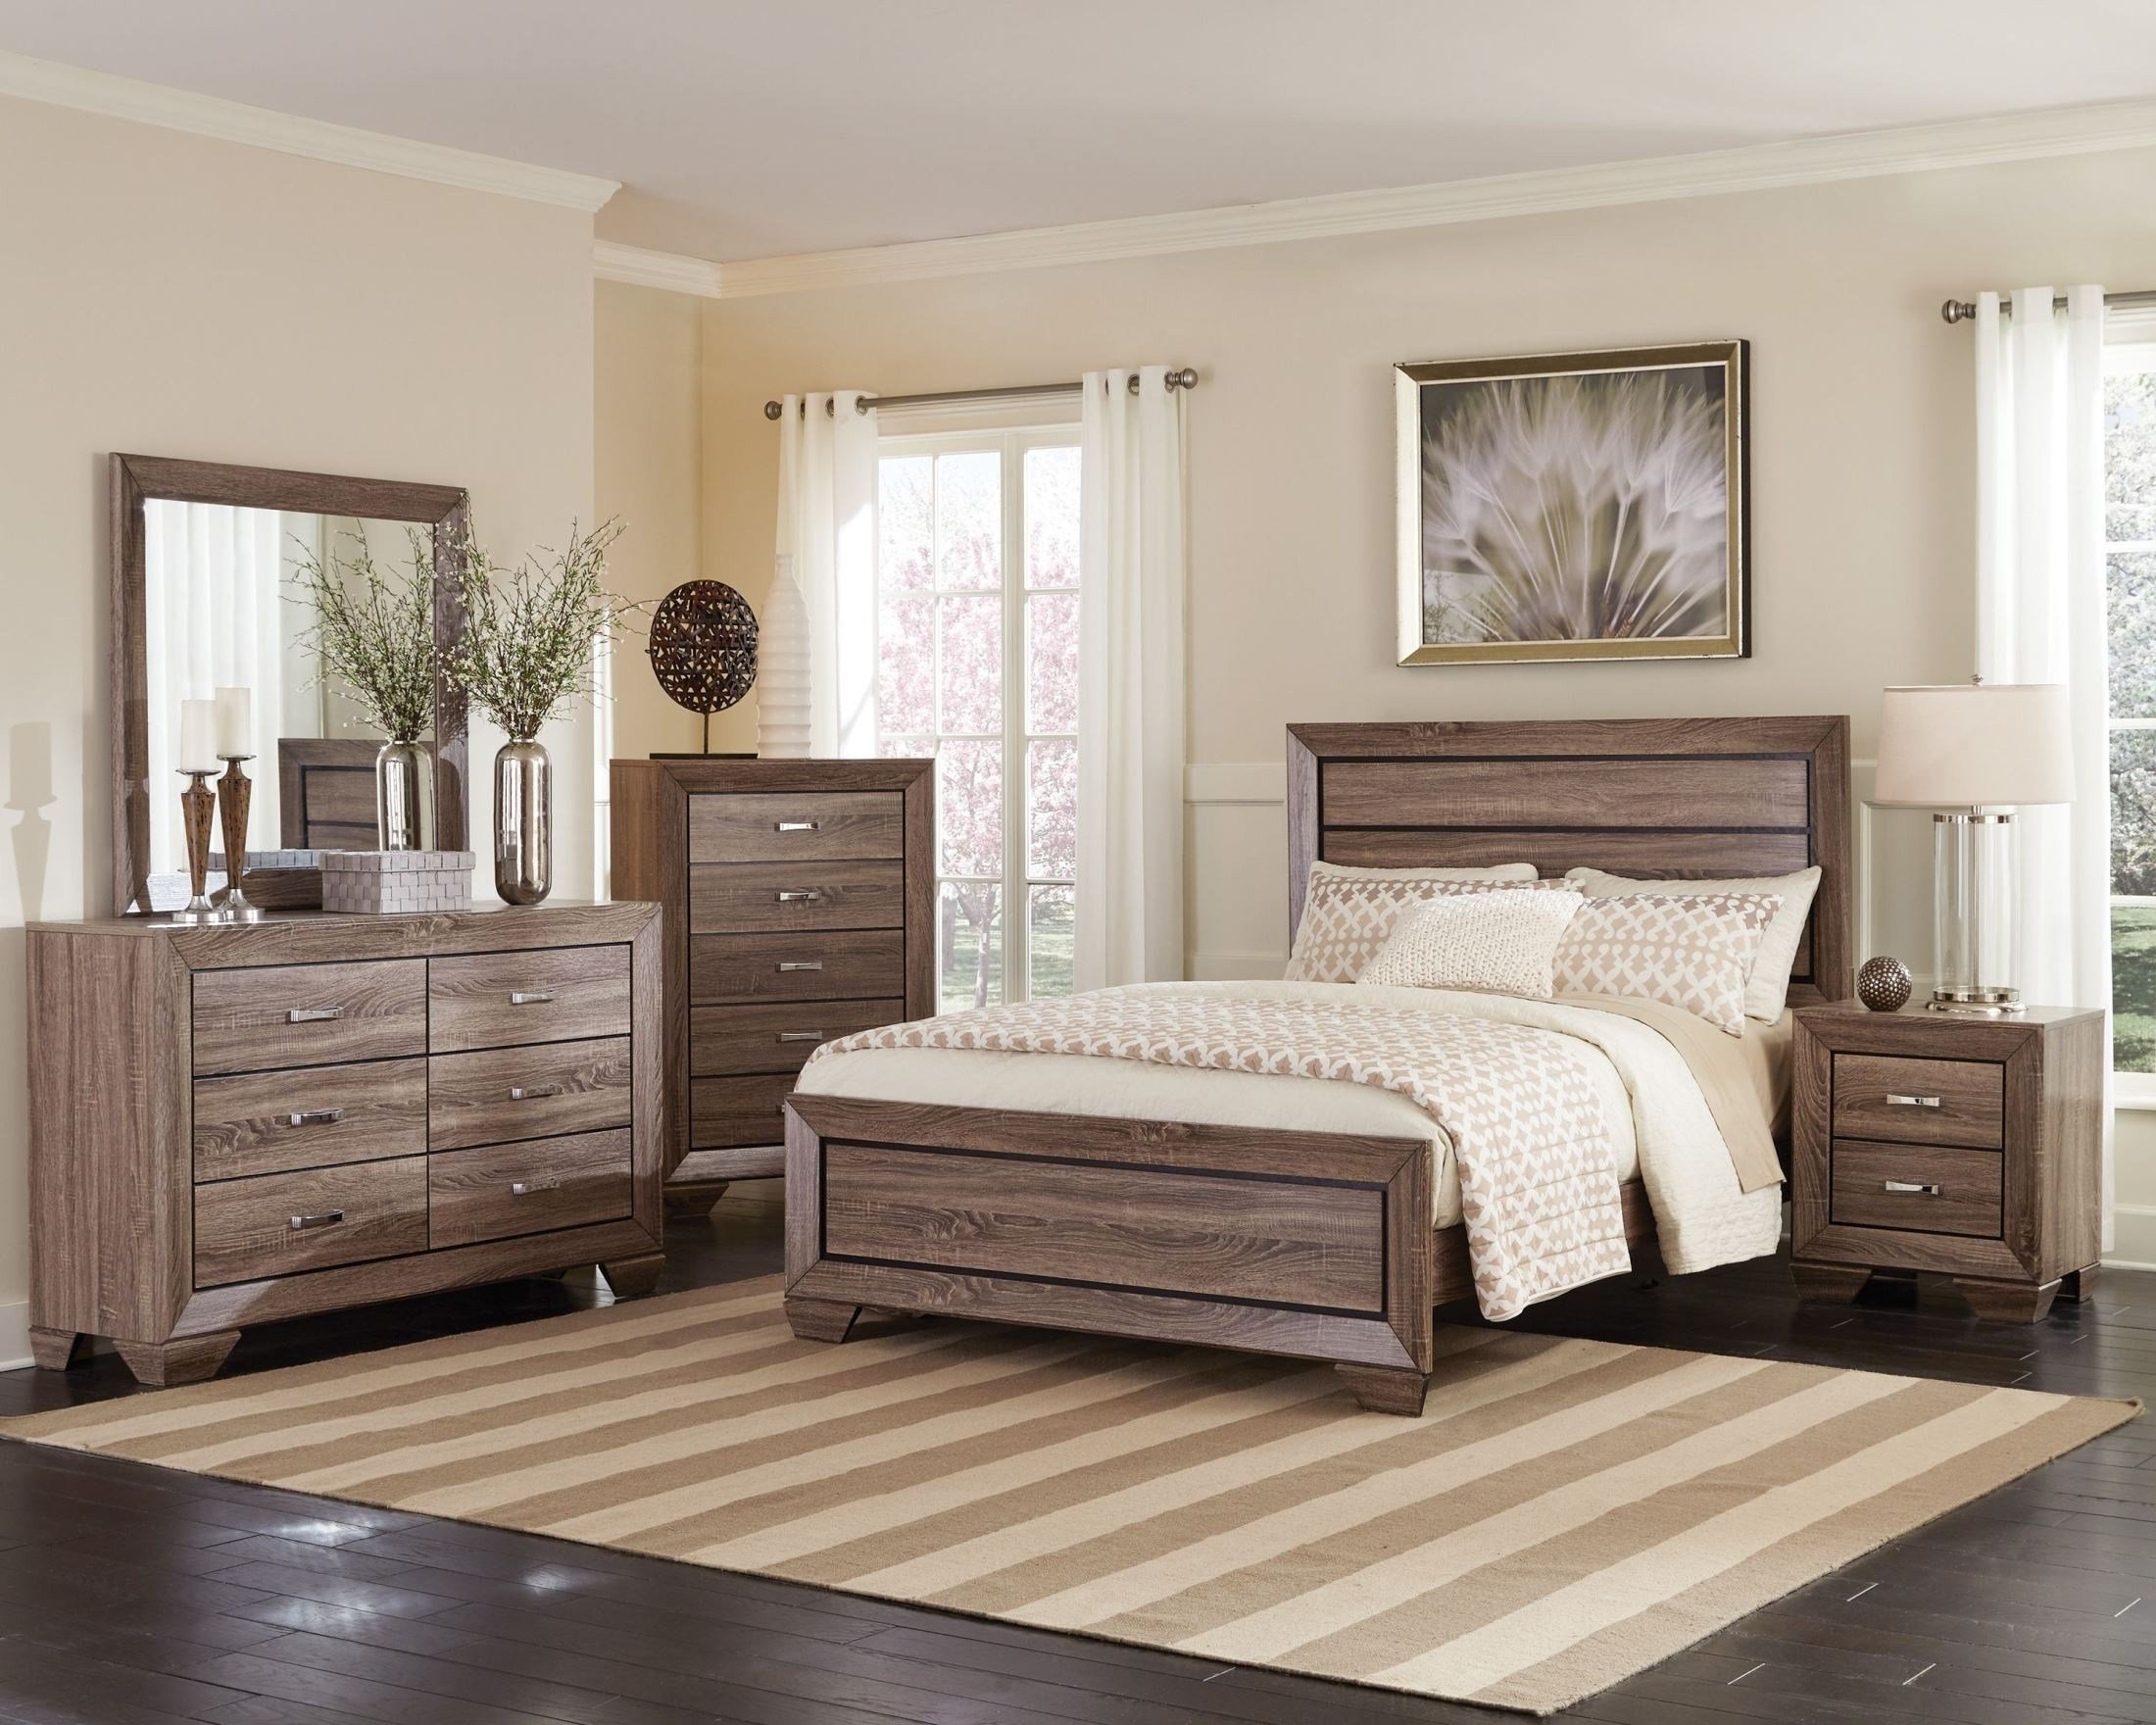 Best Kauffman Washed Taupe Panel Bedroom Set From Coaster With Pictures Original 1024 x 768